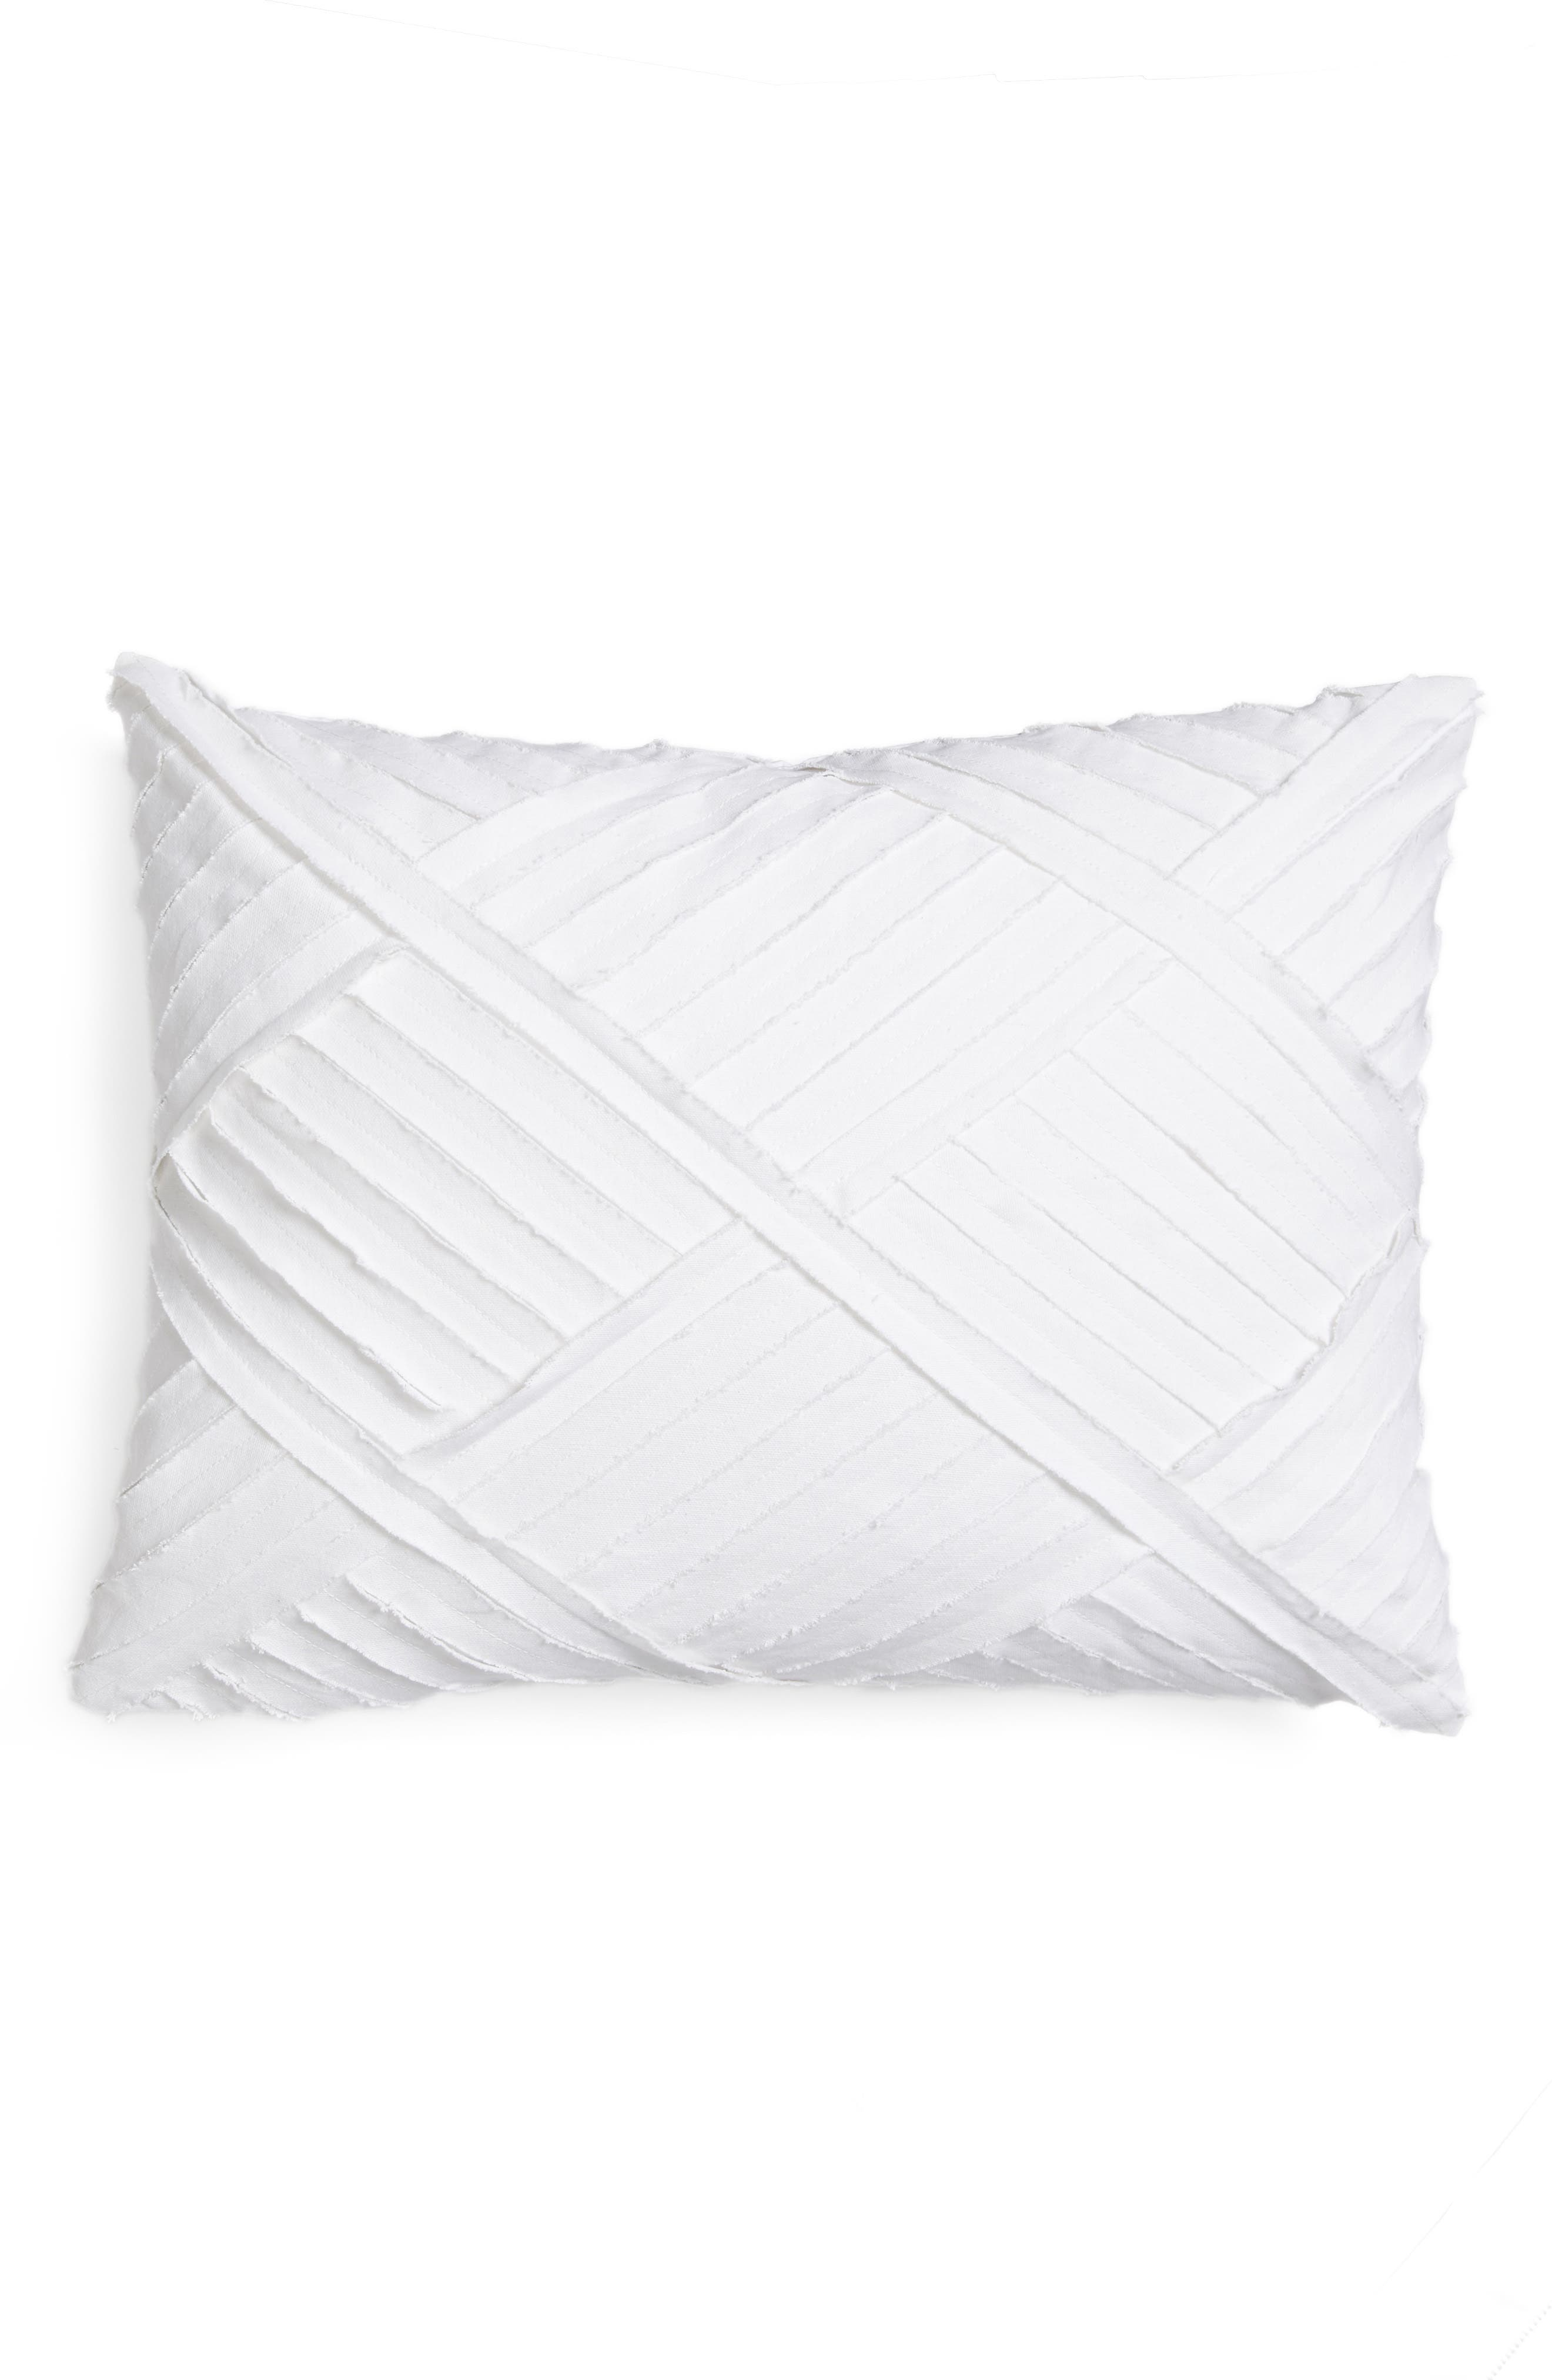 Alexandria Accent Pillow,                         Main,                         color, White